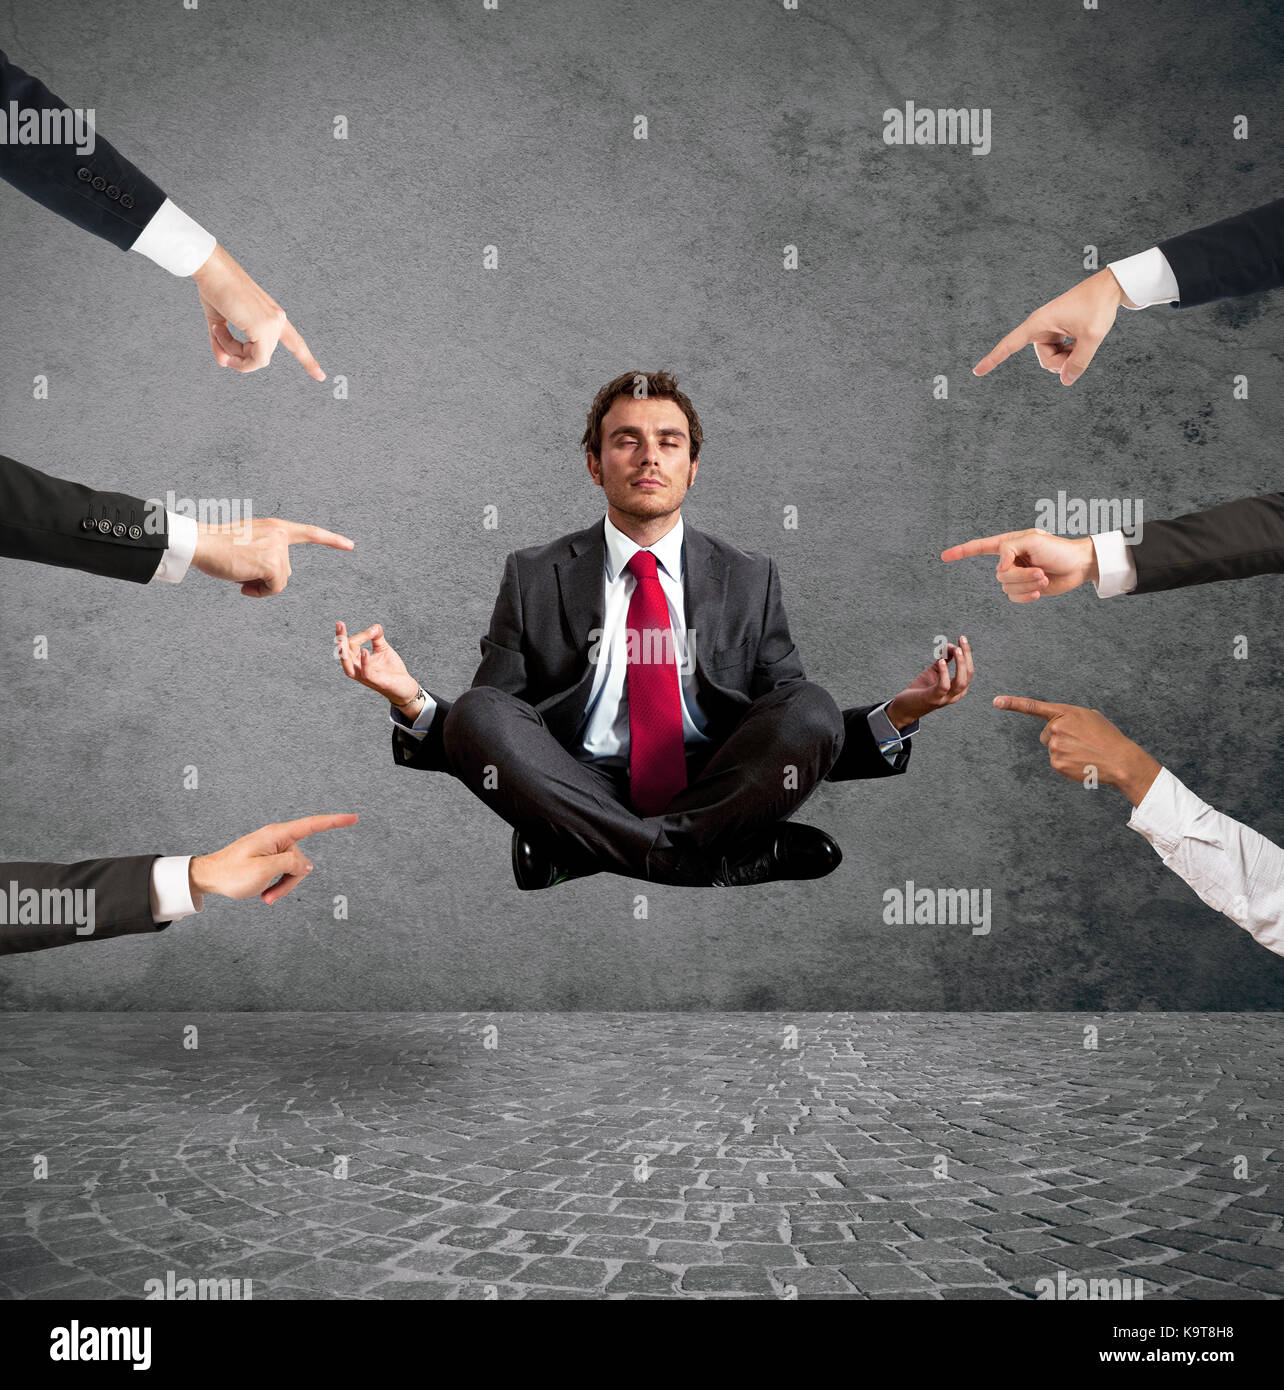 Relaxed businessman under the accusations of colleagues - Stock Image